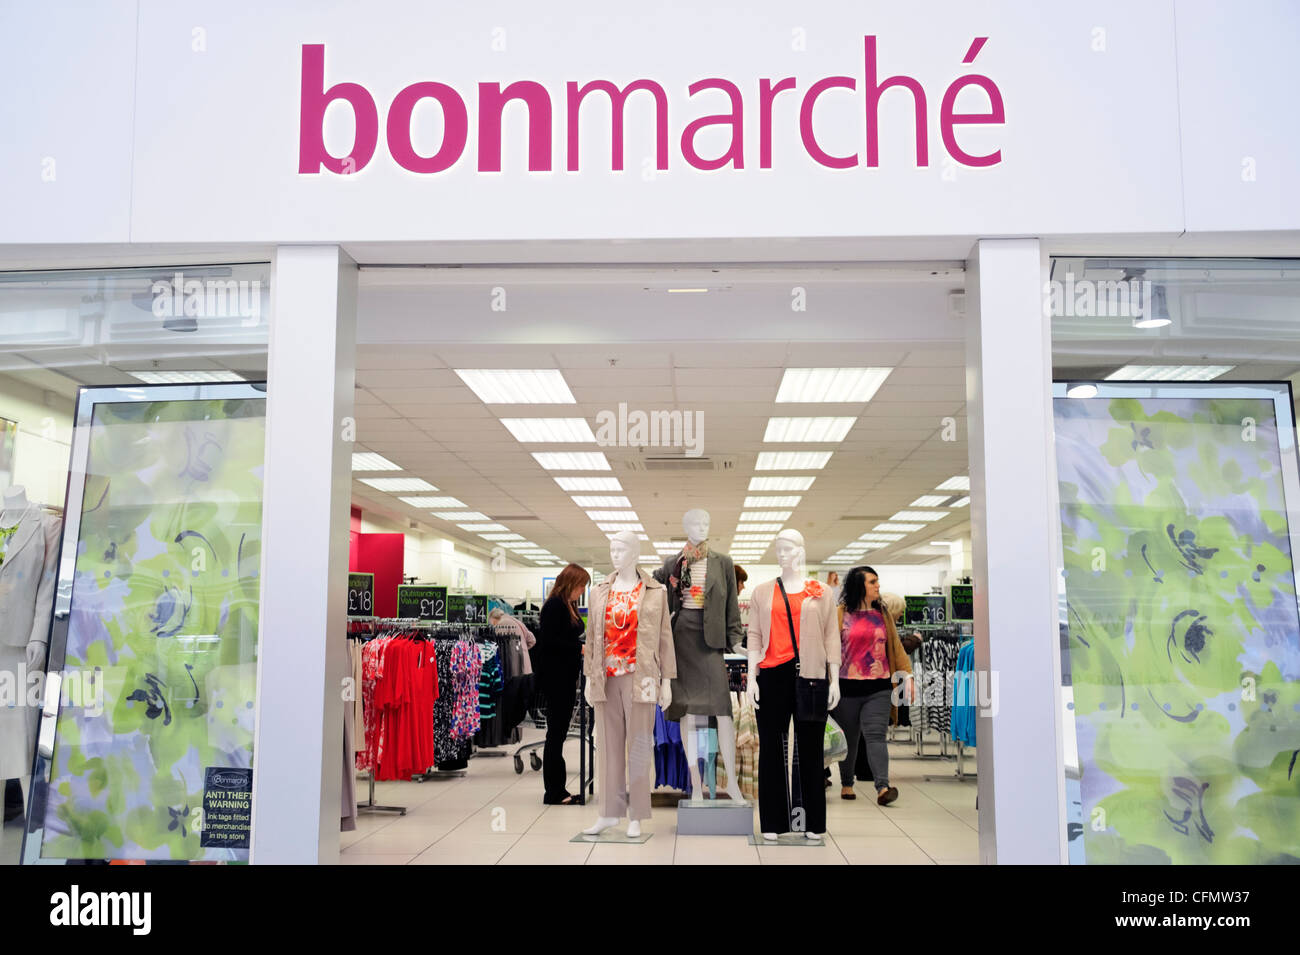 Bonmarche shop at Merry Hill shopping centre, West Midlands, UK. - Stock Image